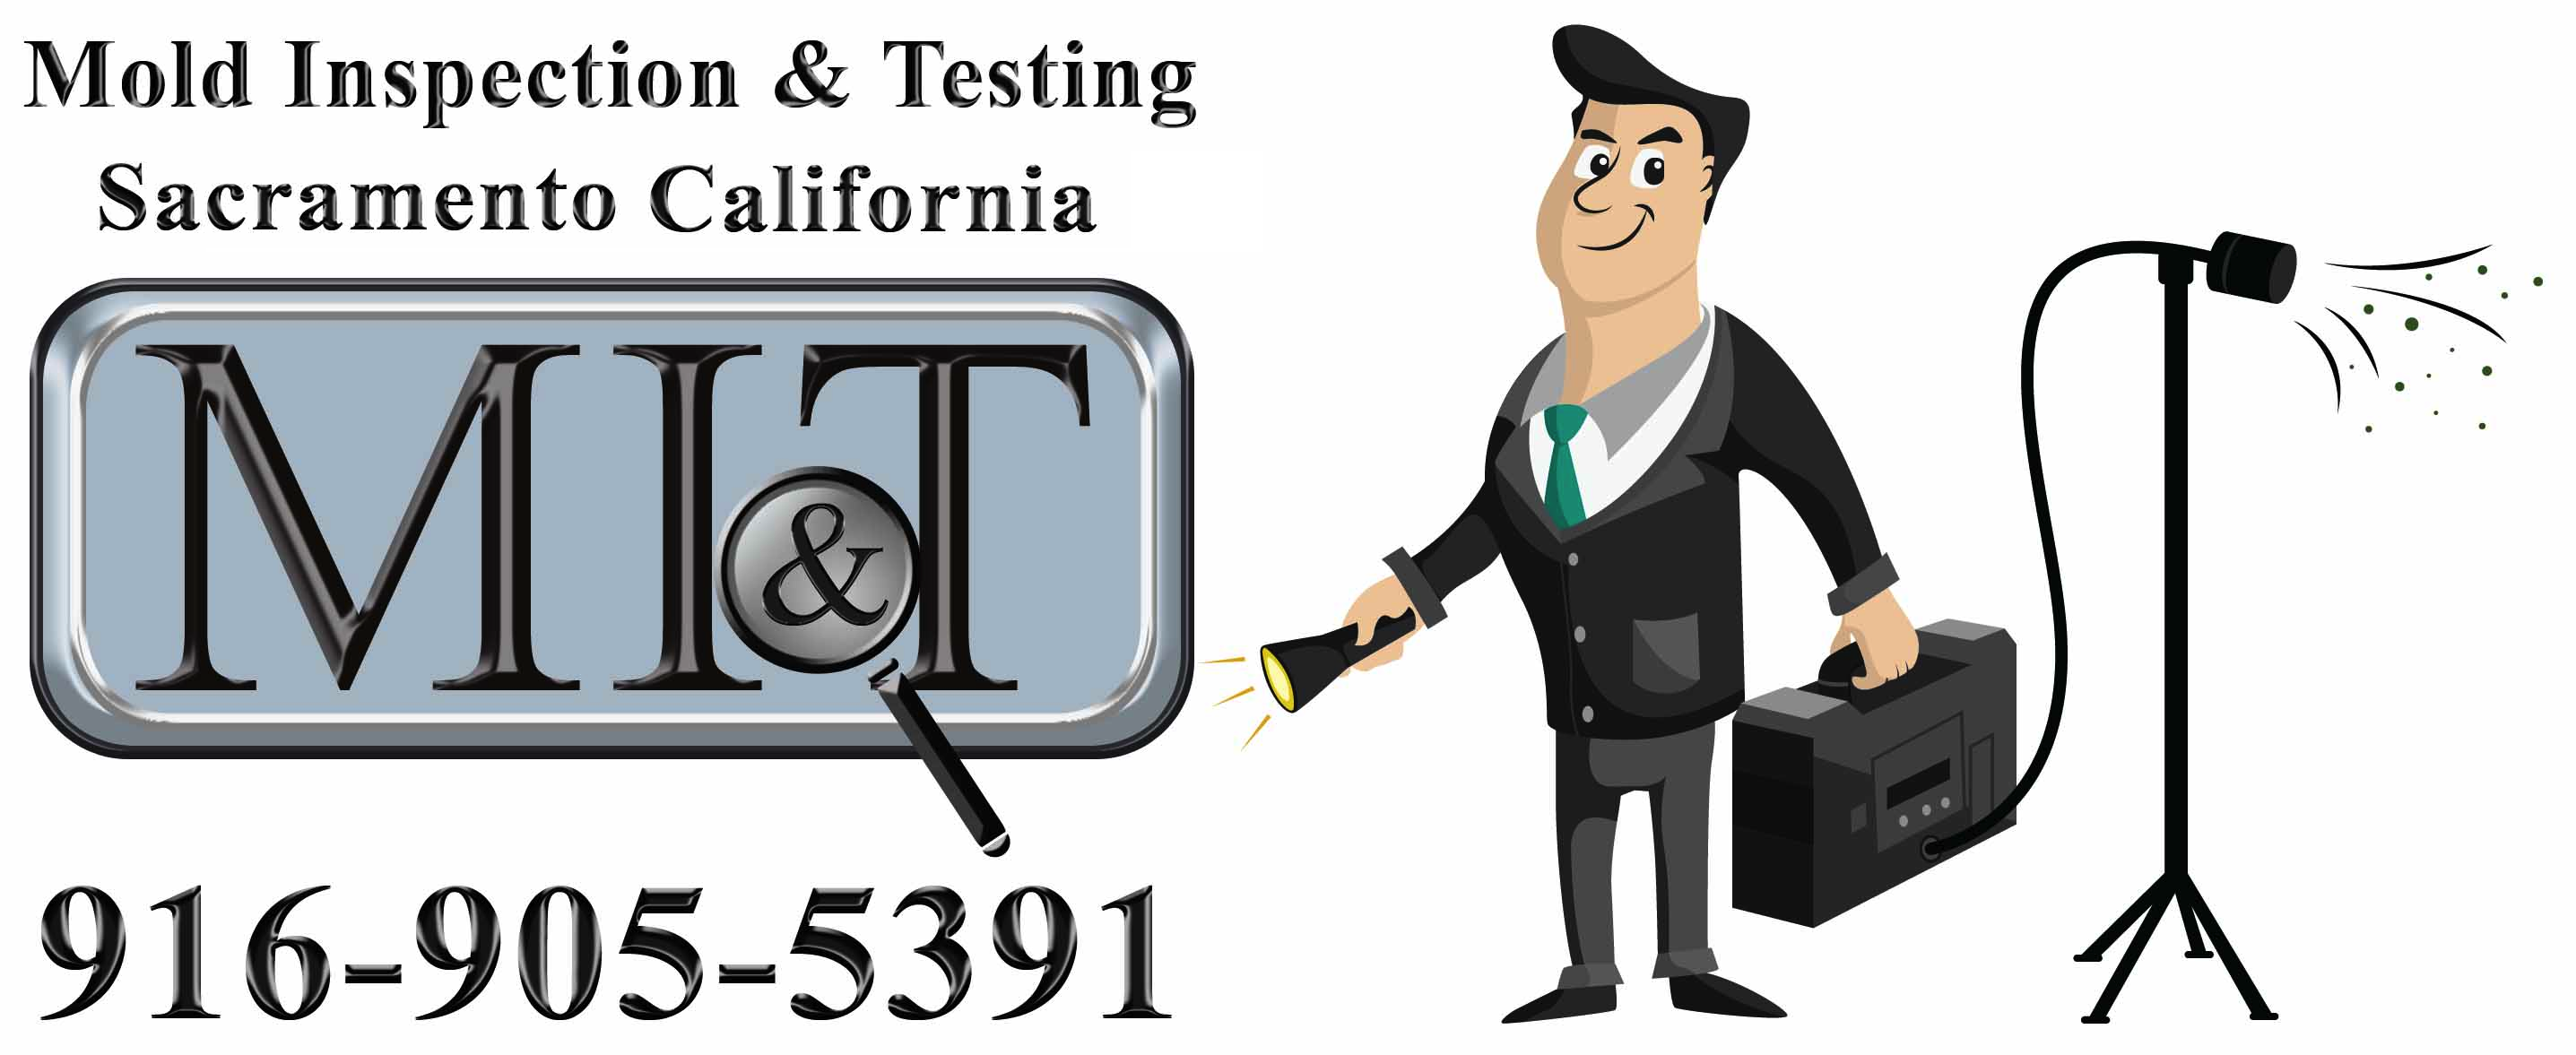 Logo Services Products Mold Inspection Testing Sacramento Performs Visual Essments Along With Air And Surface Sampling To Give An Unbiased Opinion On